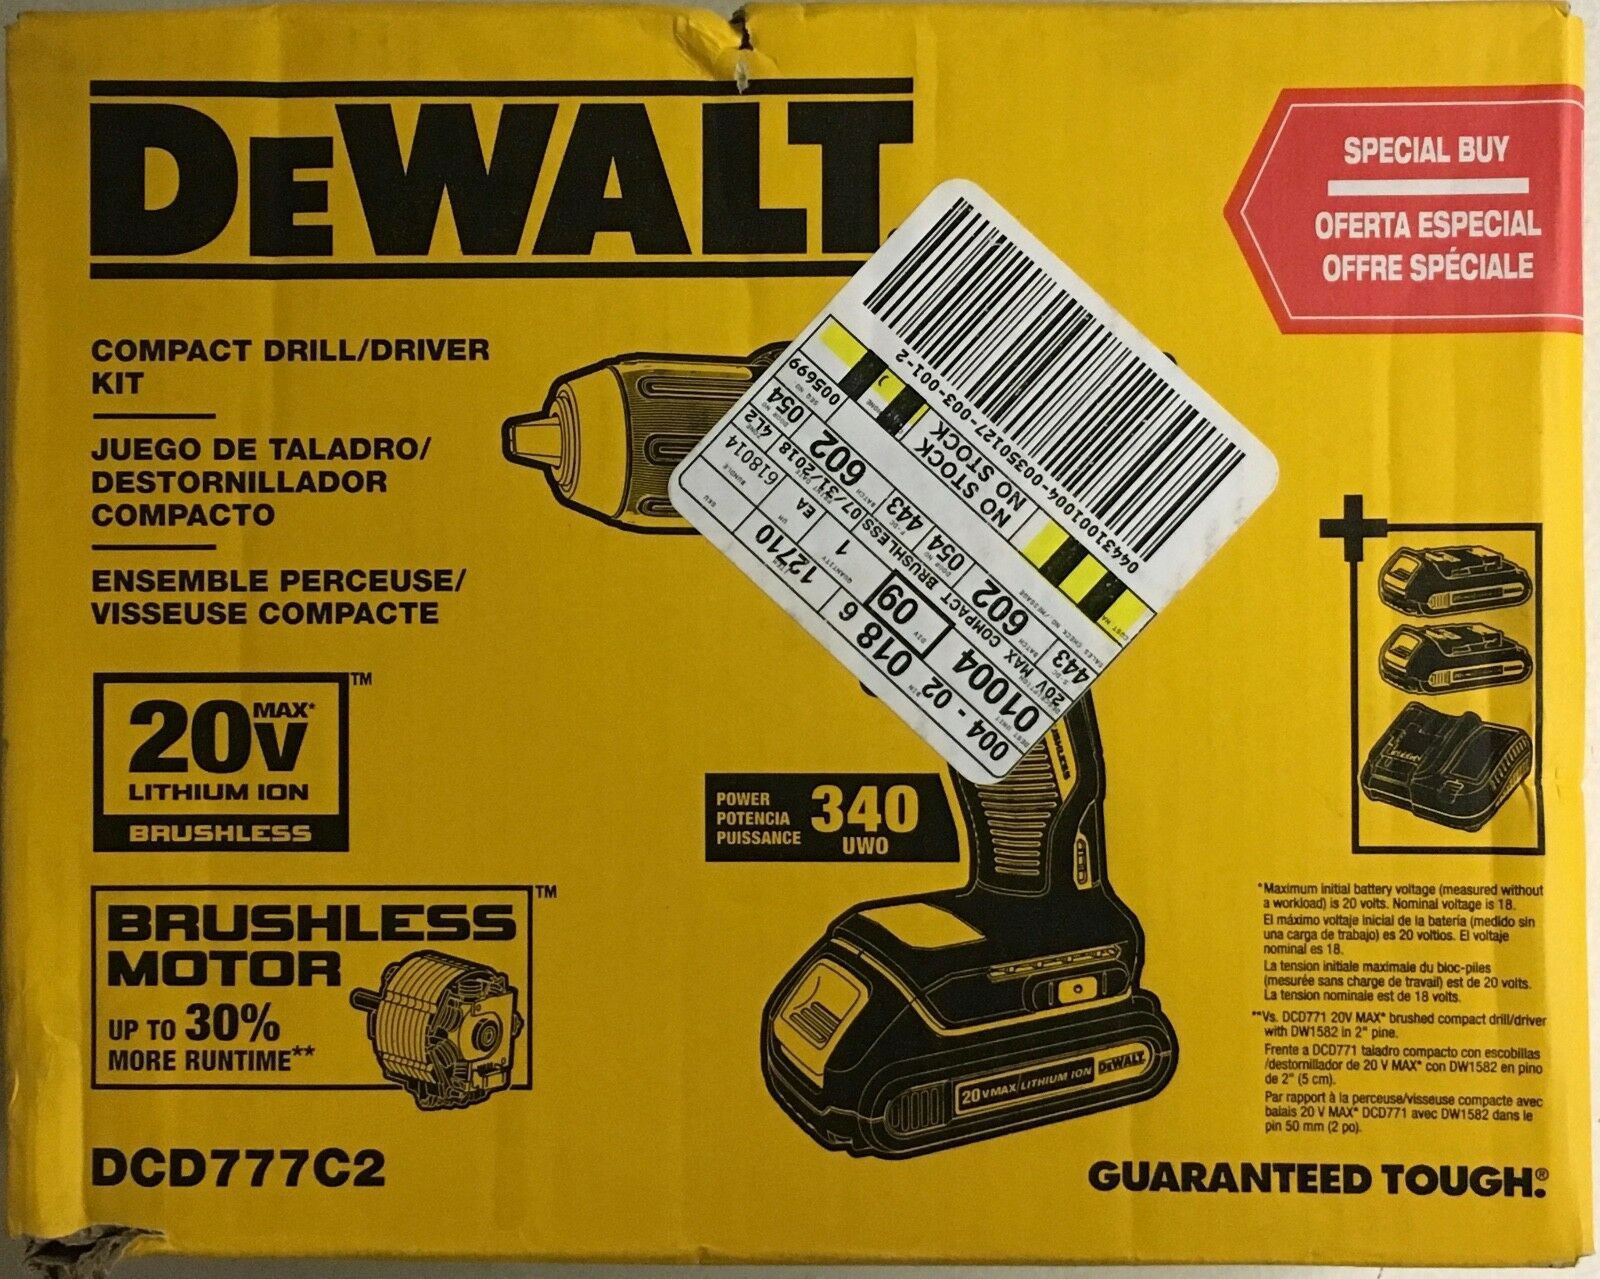 NEW DeWalt DCD777C2 20v Compact Brushless Drill/Driver KIT Max Lithium Ion